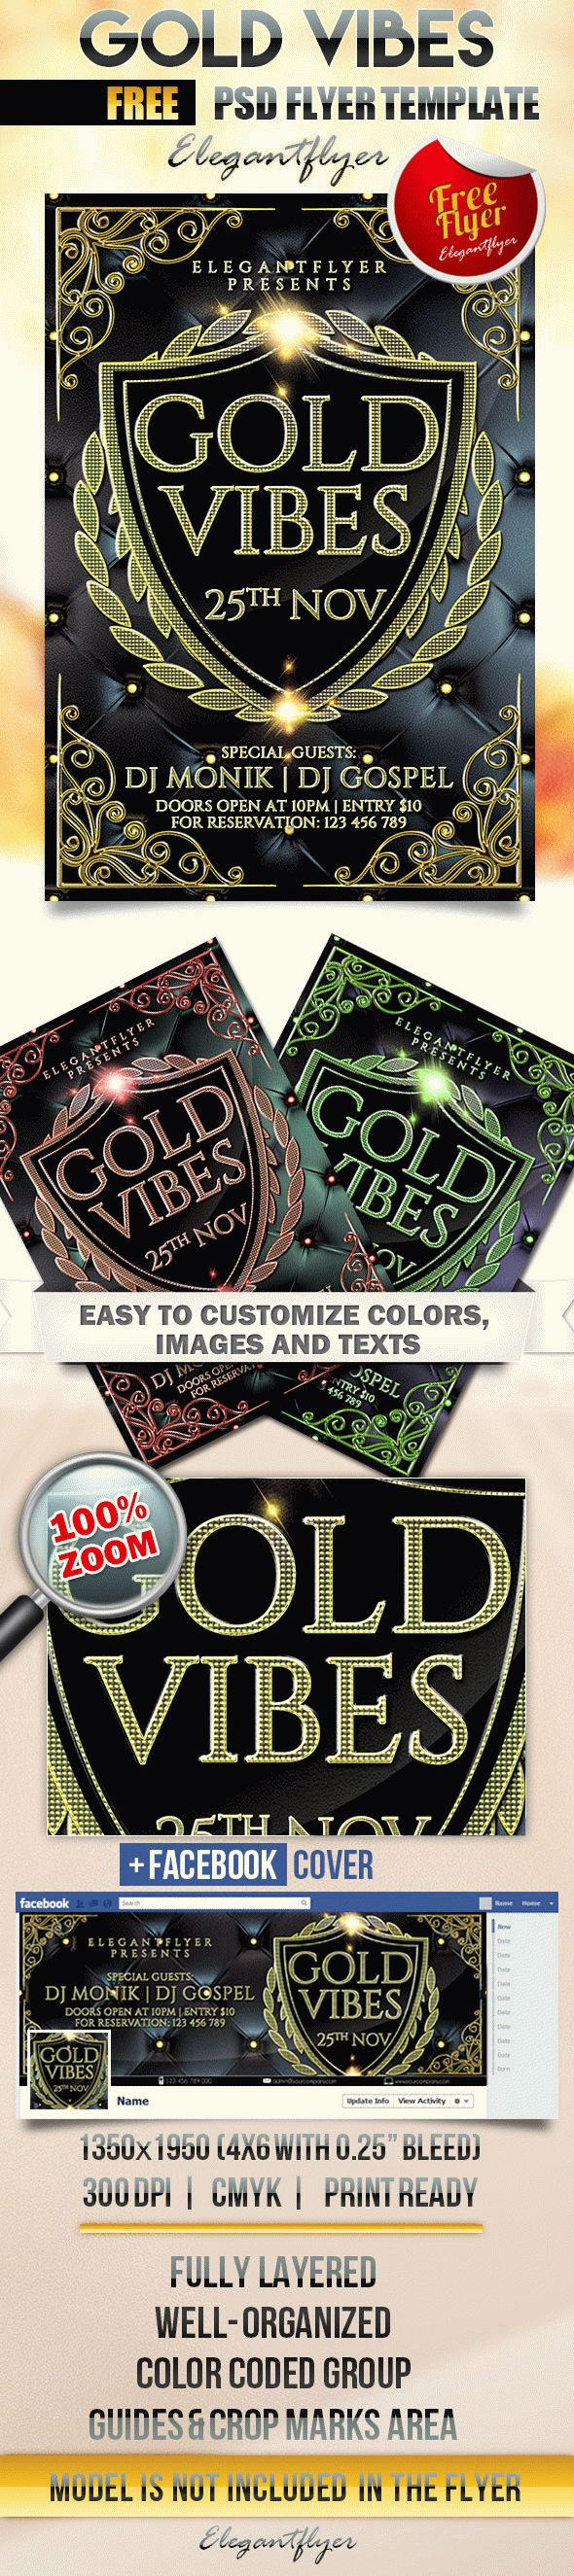 Gold Vibes – Free Flyer PSD Template